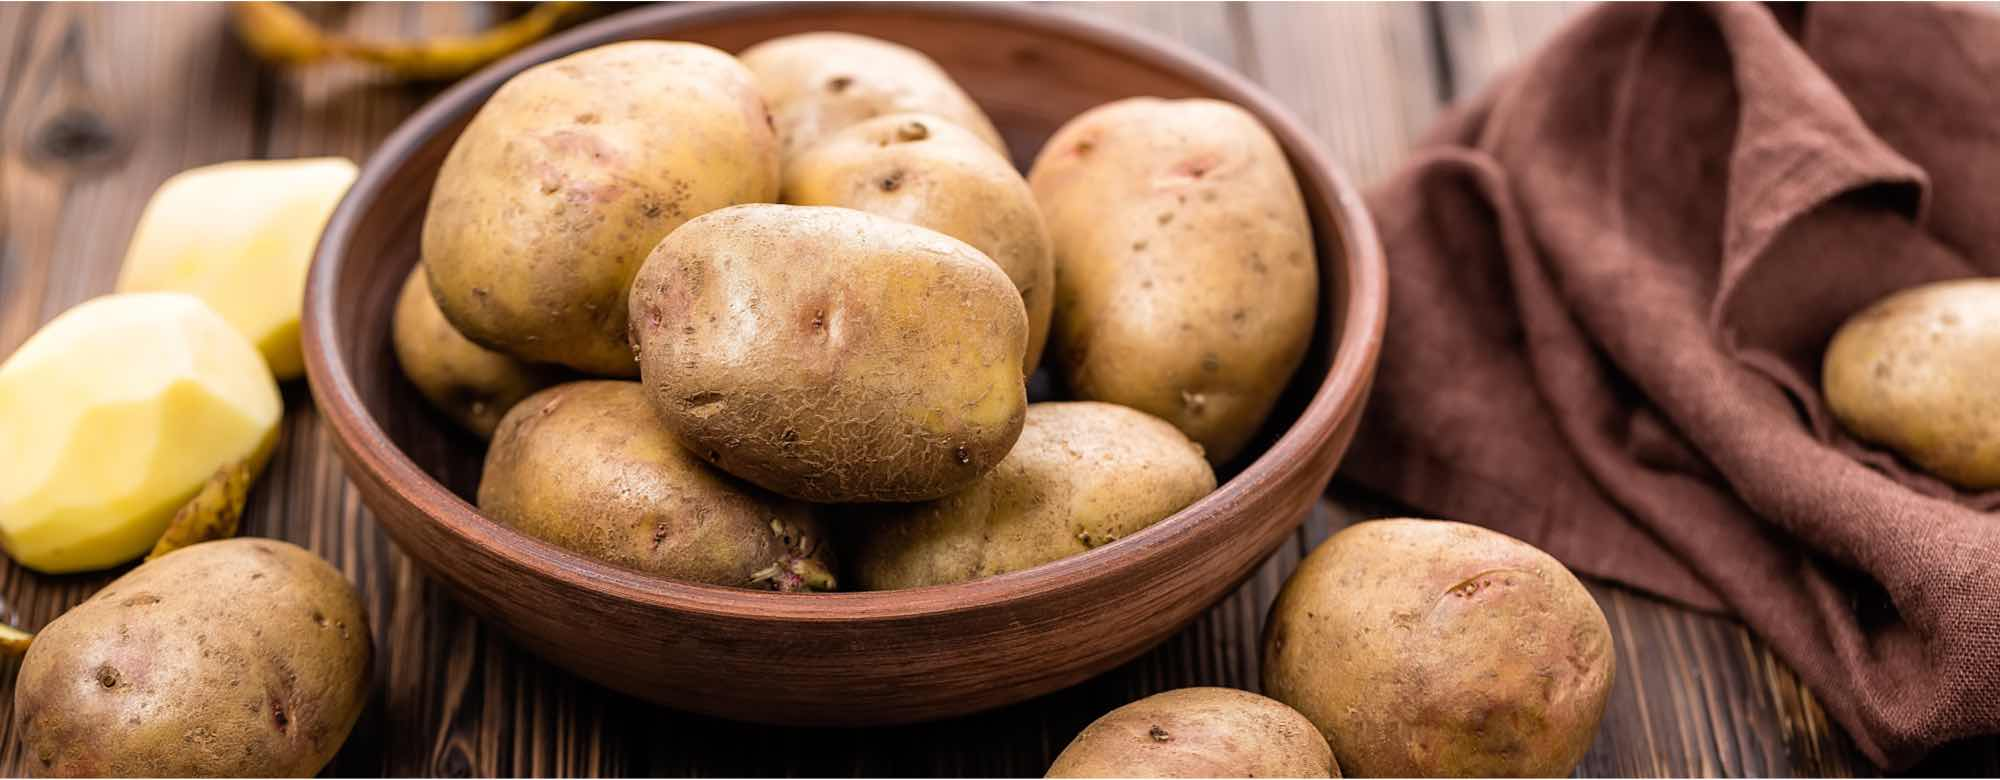 Image of raw potatoes in a bowl